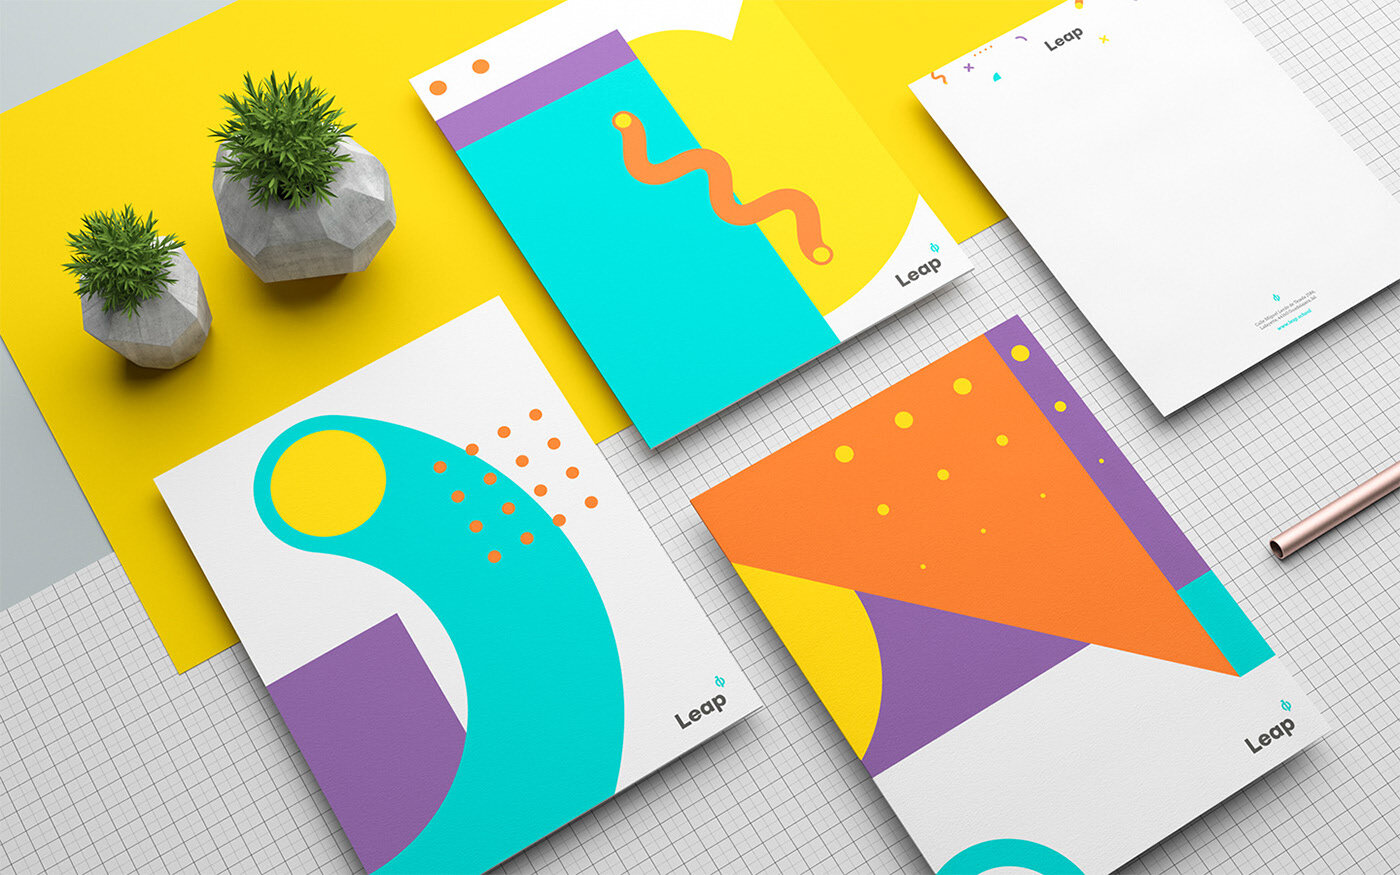 Leap project  by Menta Picante. Featured in the Brand Cards.